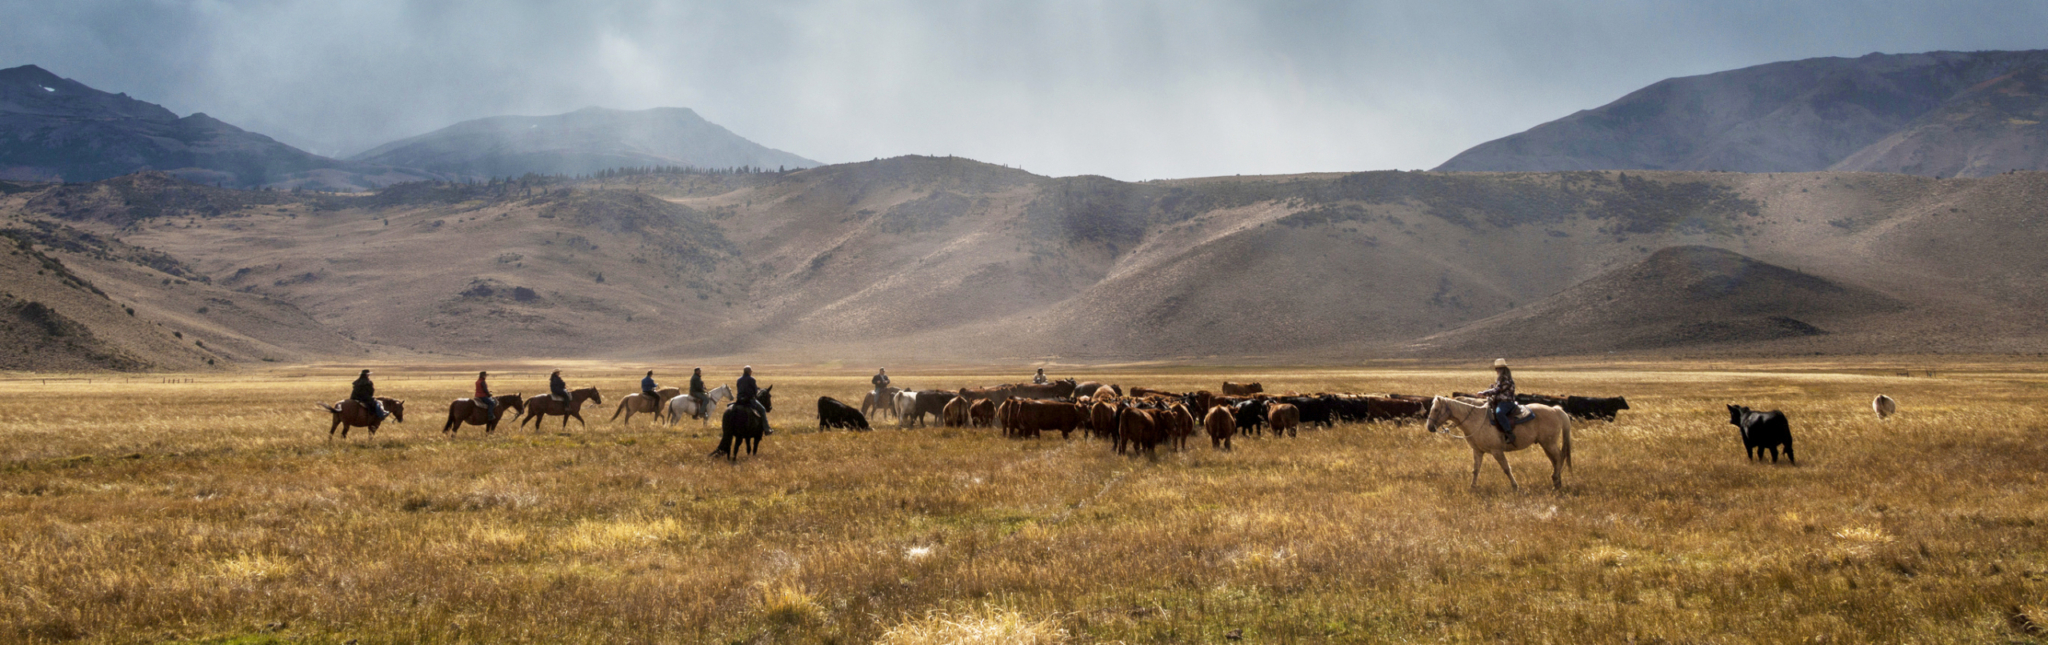 hunewill ranch with cowboys and cattle